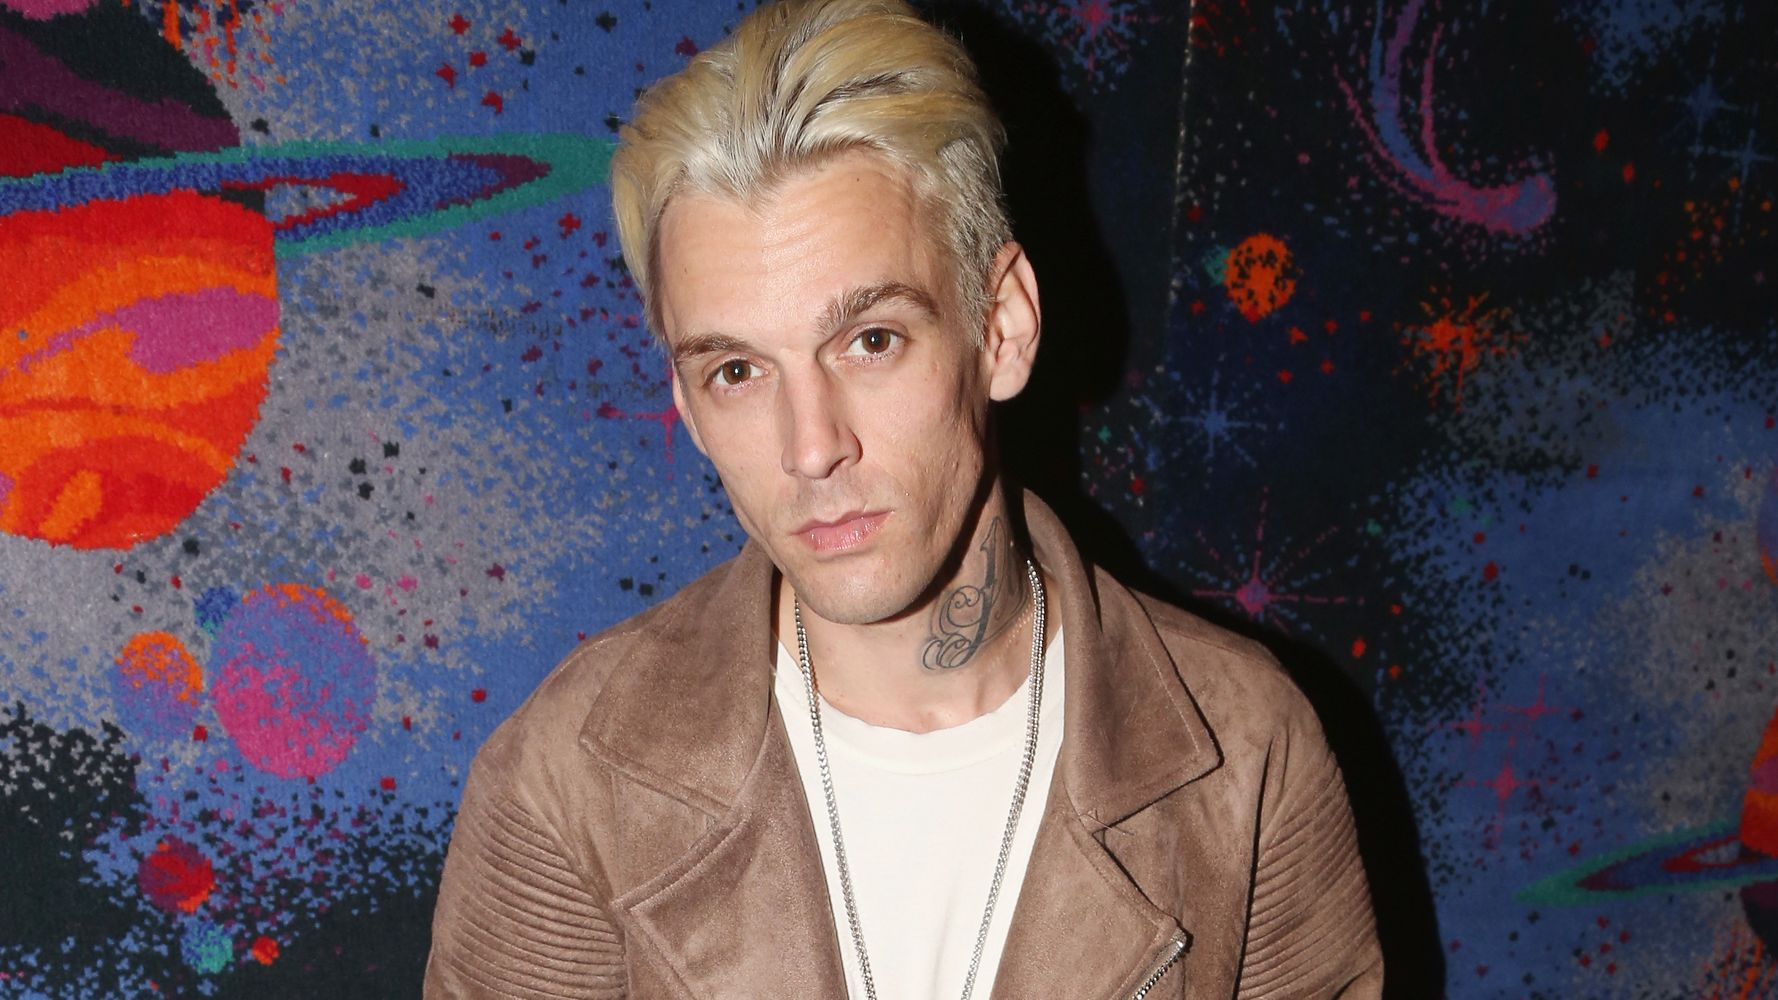 Aaron Carter Arrested For Alleged DUI And Drug Possession In